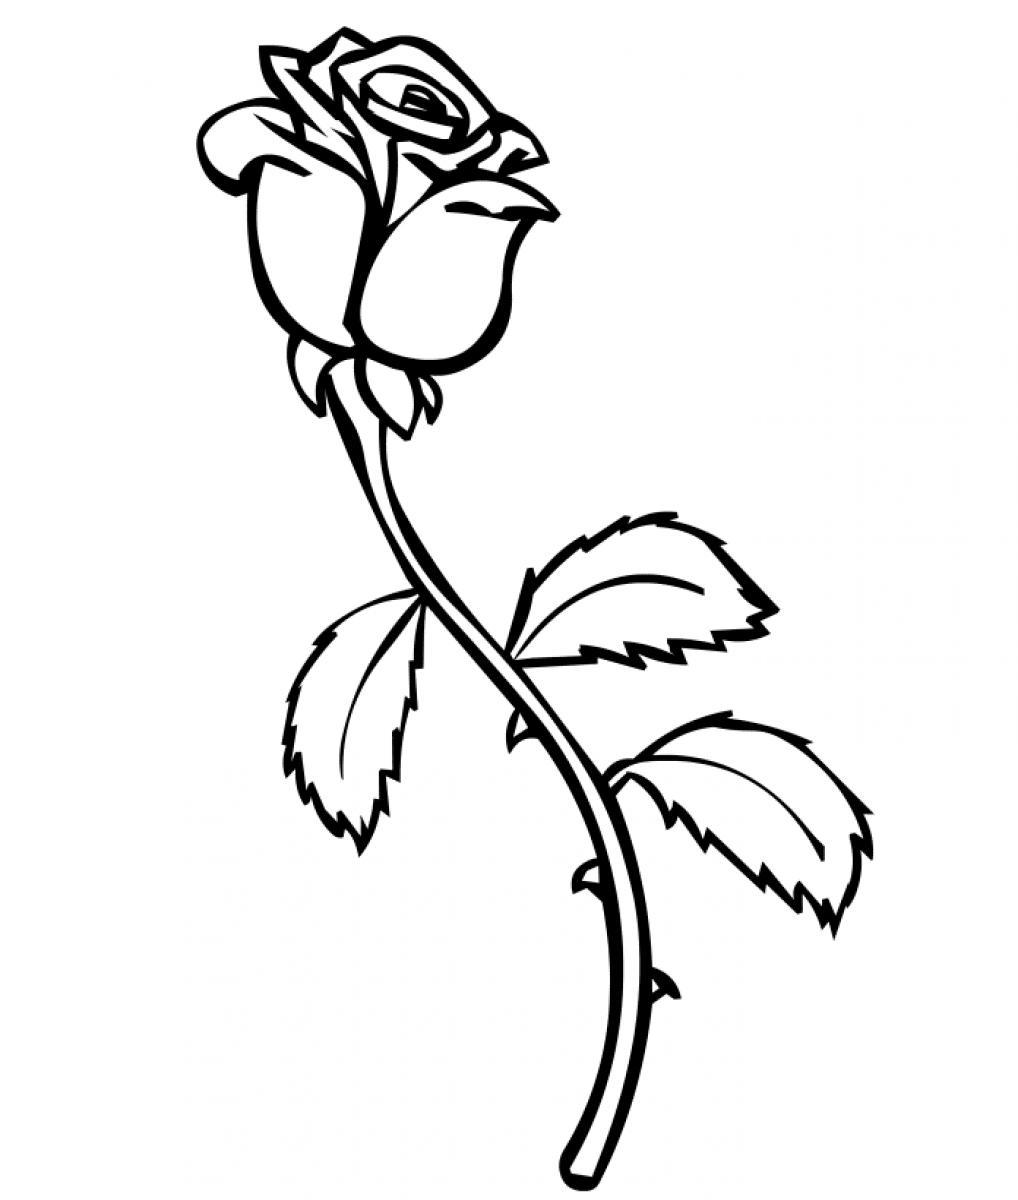 coloring pictures roses valentine rose coloring pages getcoloringpagescom roses coloring pictures